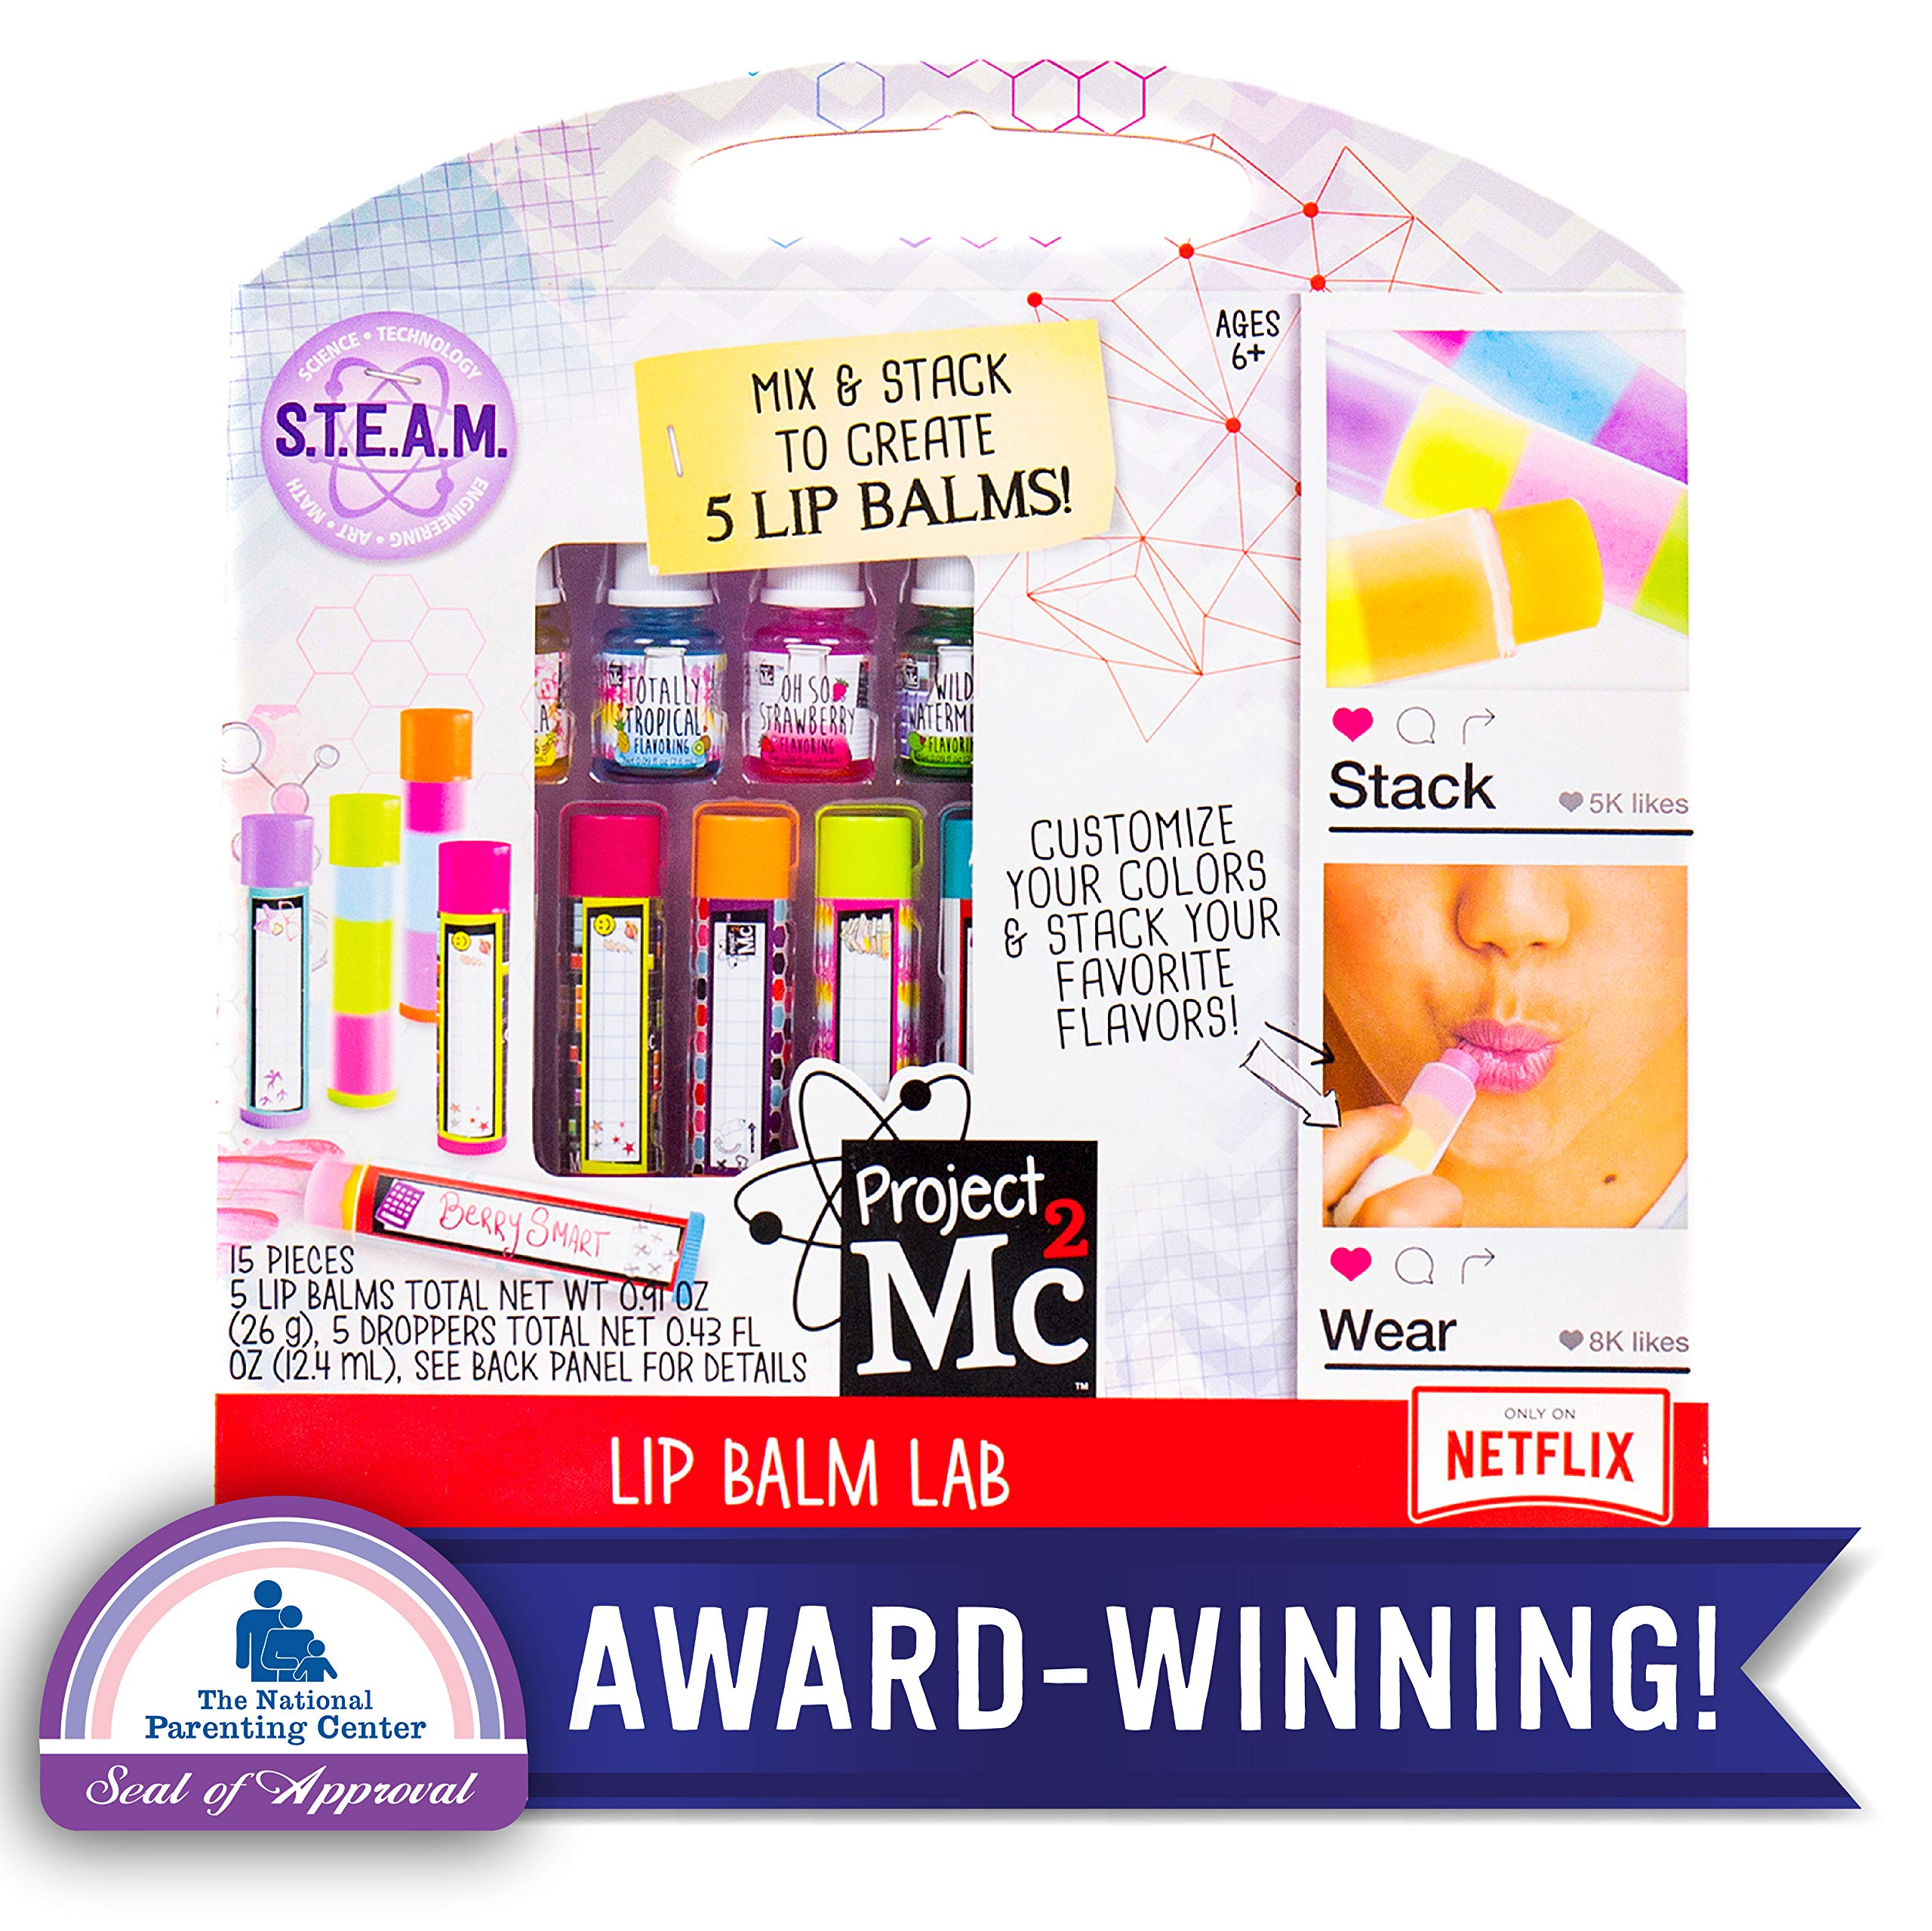 Project Mc2 Create Your Own Lip Balm Lab by Horizon Group USA, DIY STEM Science Kit, Mix & Make Your Own 5 Flavored Lip balms, Multicolored by Project Mc2